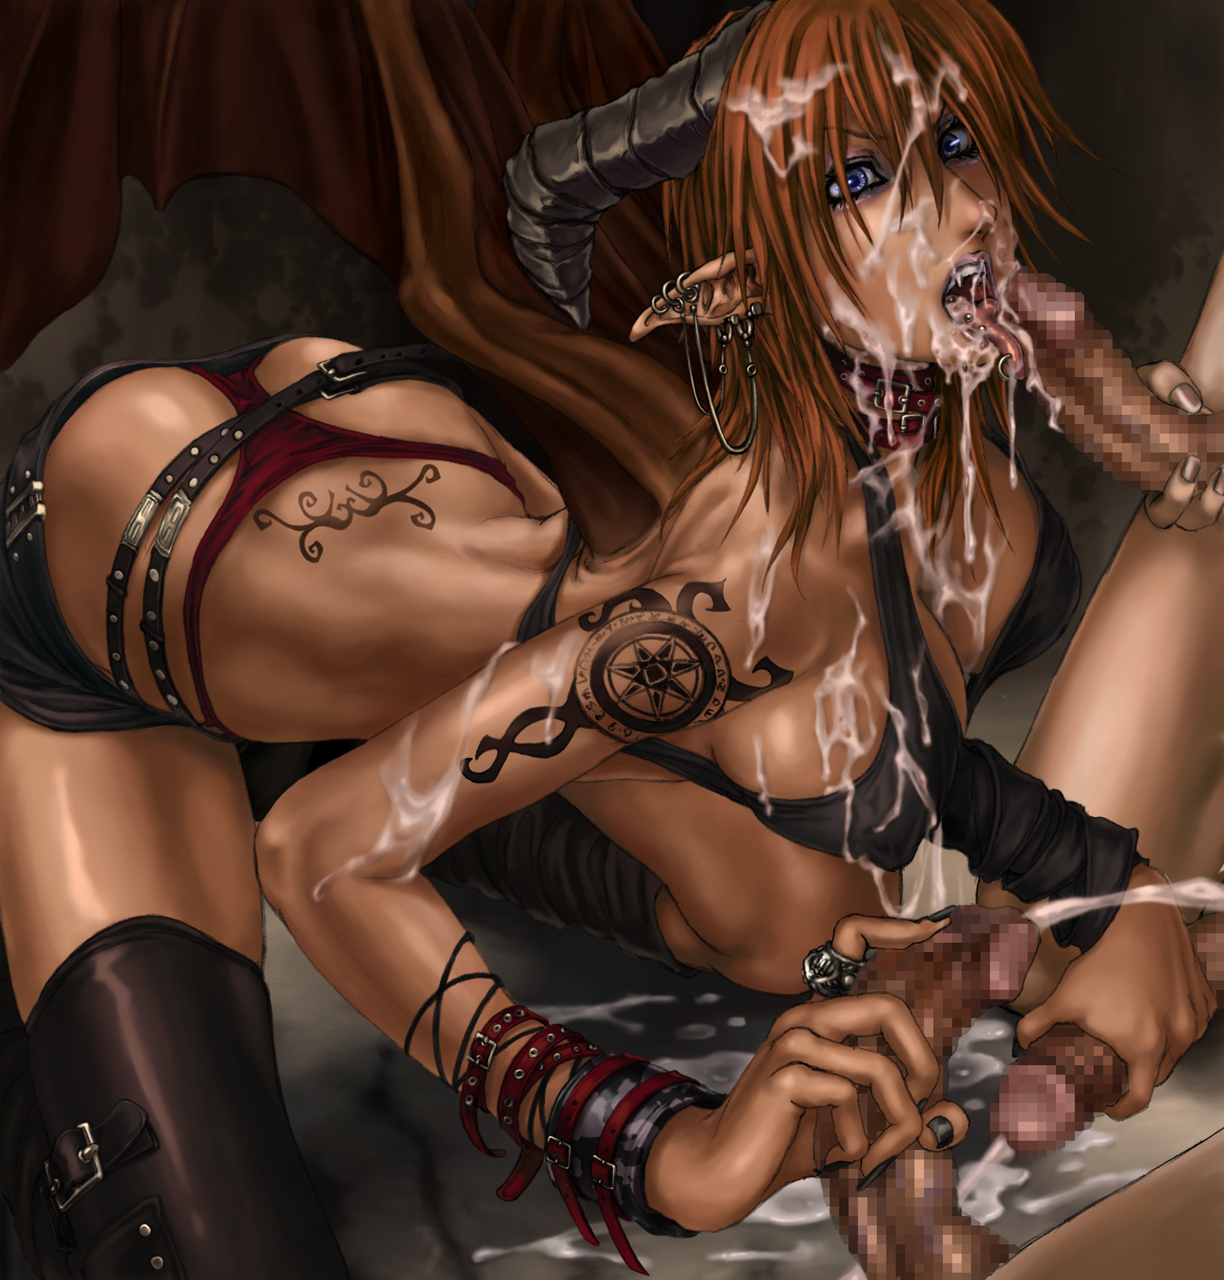 Succubus art sex porncraft images